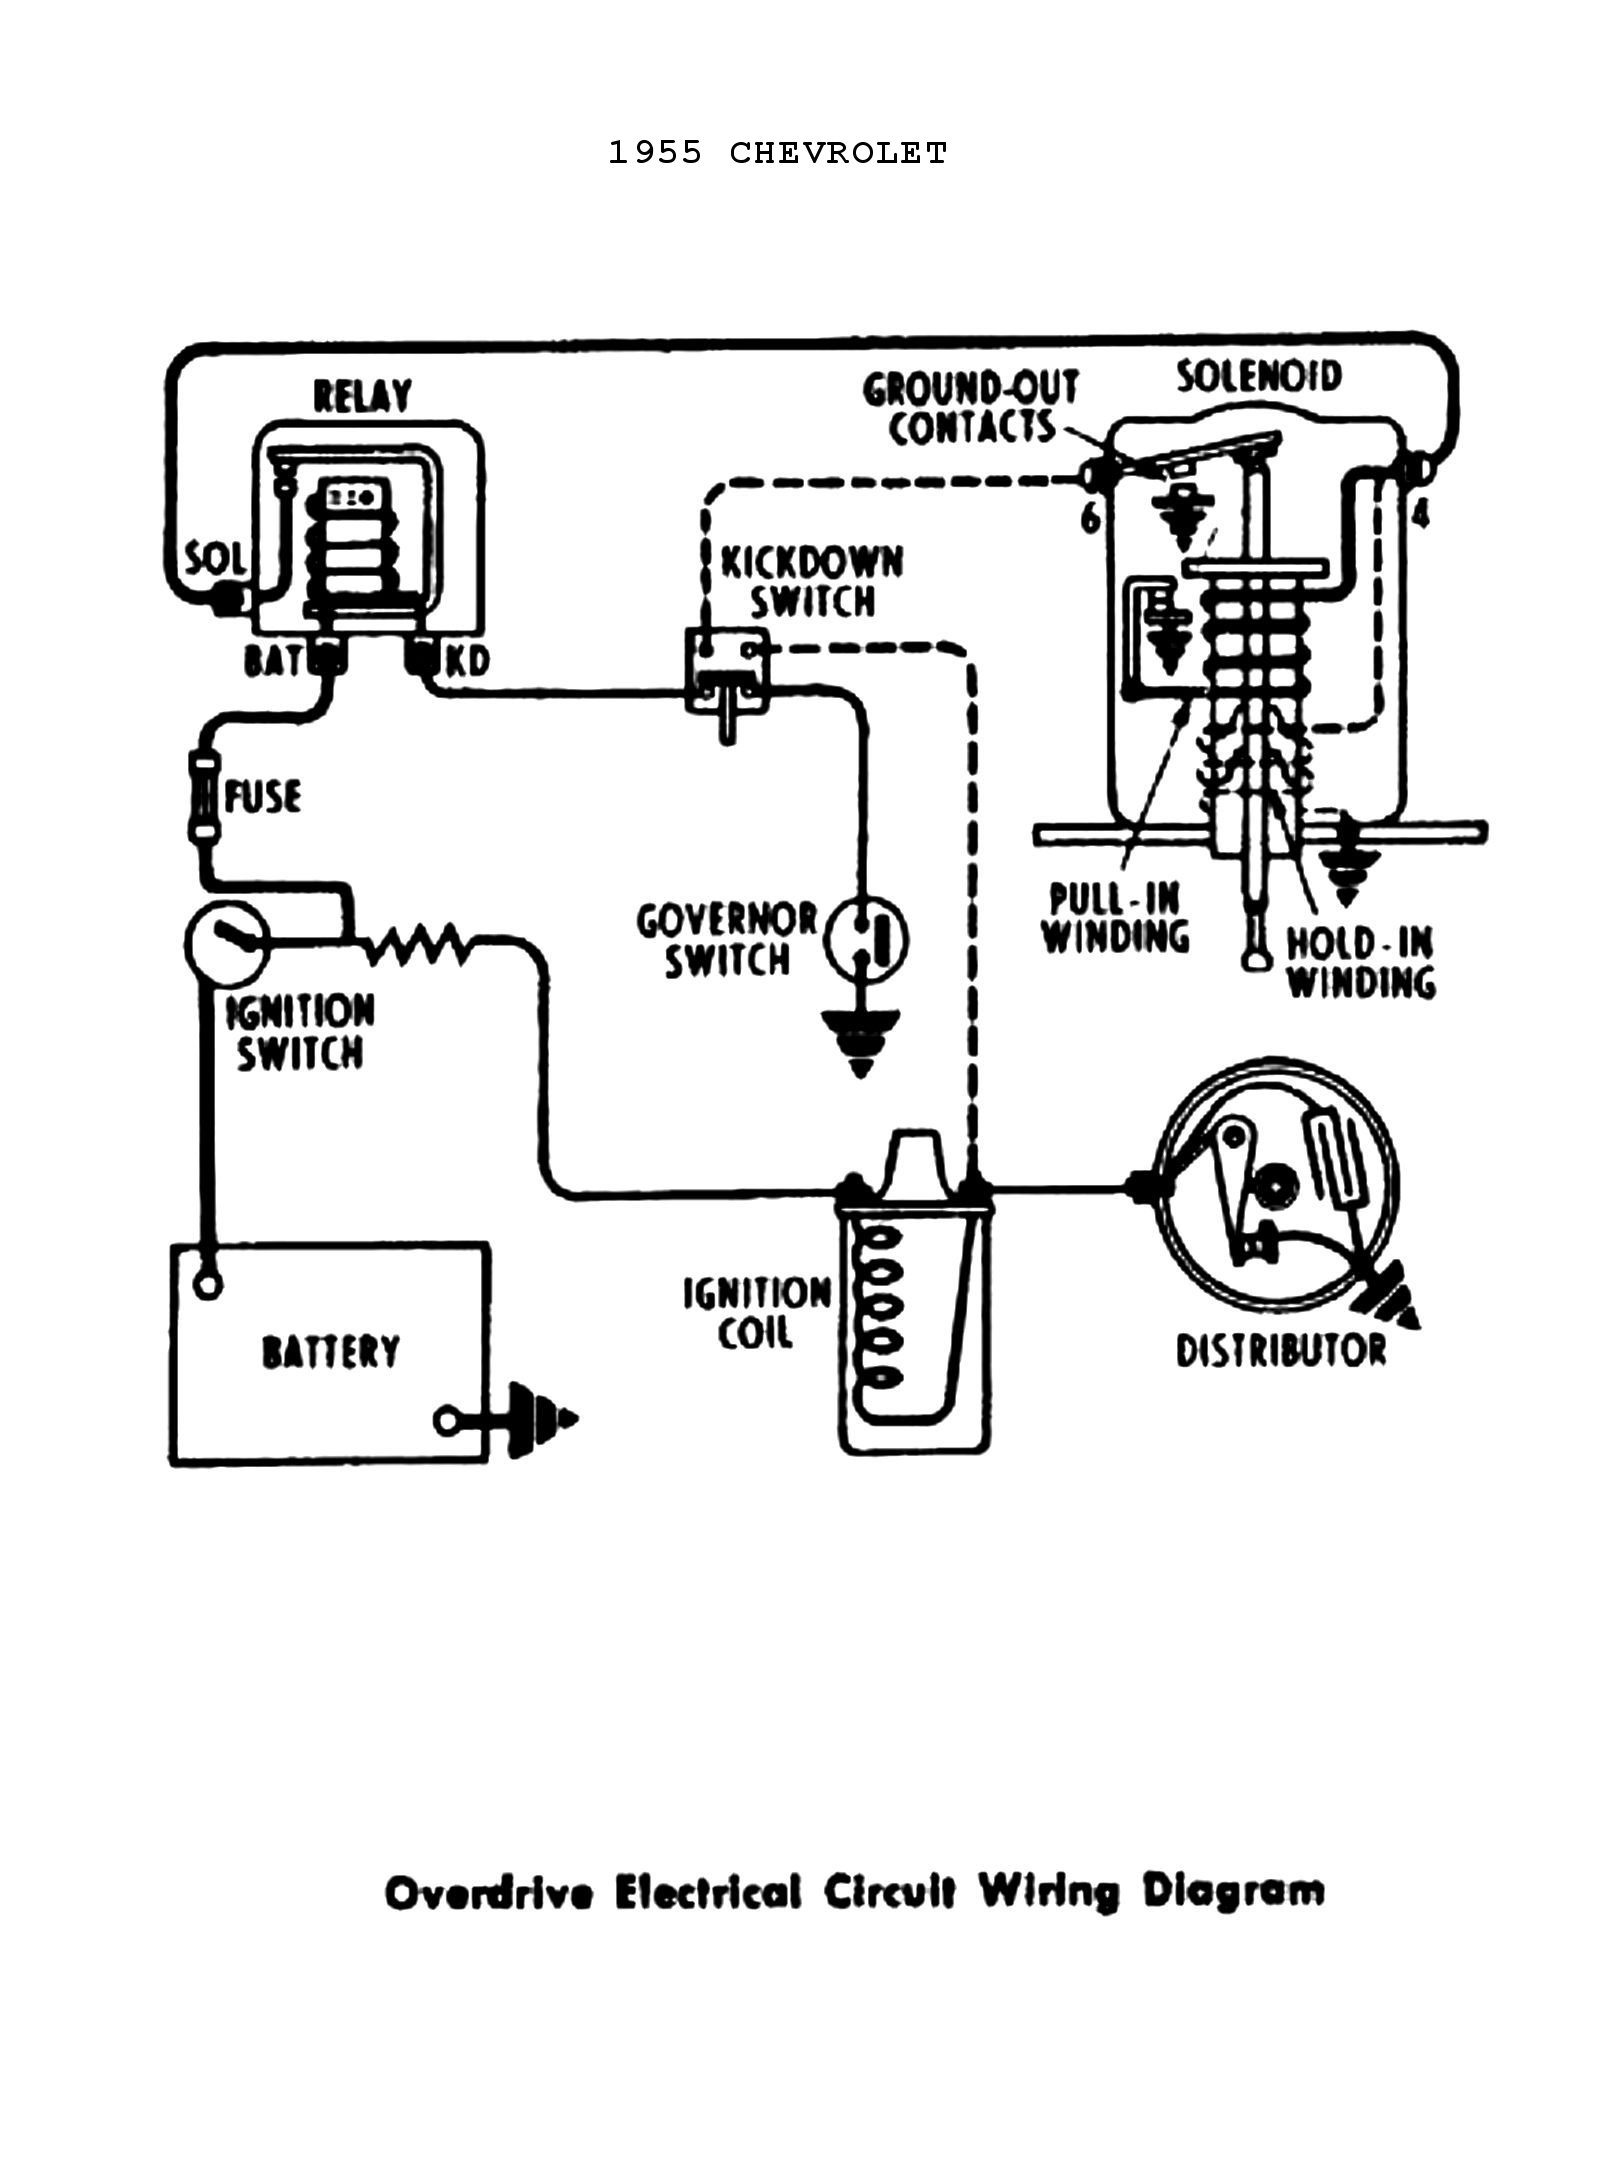 55odtrans1 chevy wiring diagrams Coil and Distributor Wiring Diagram at sewacar.co